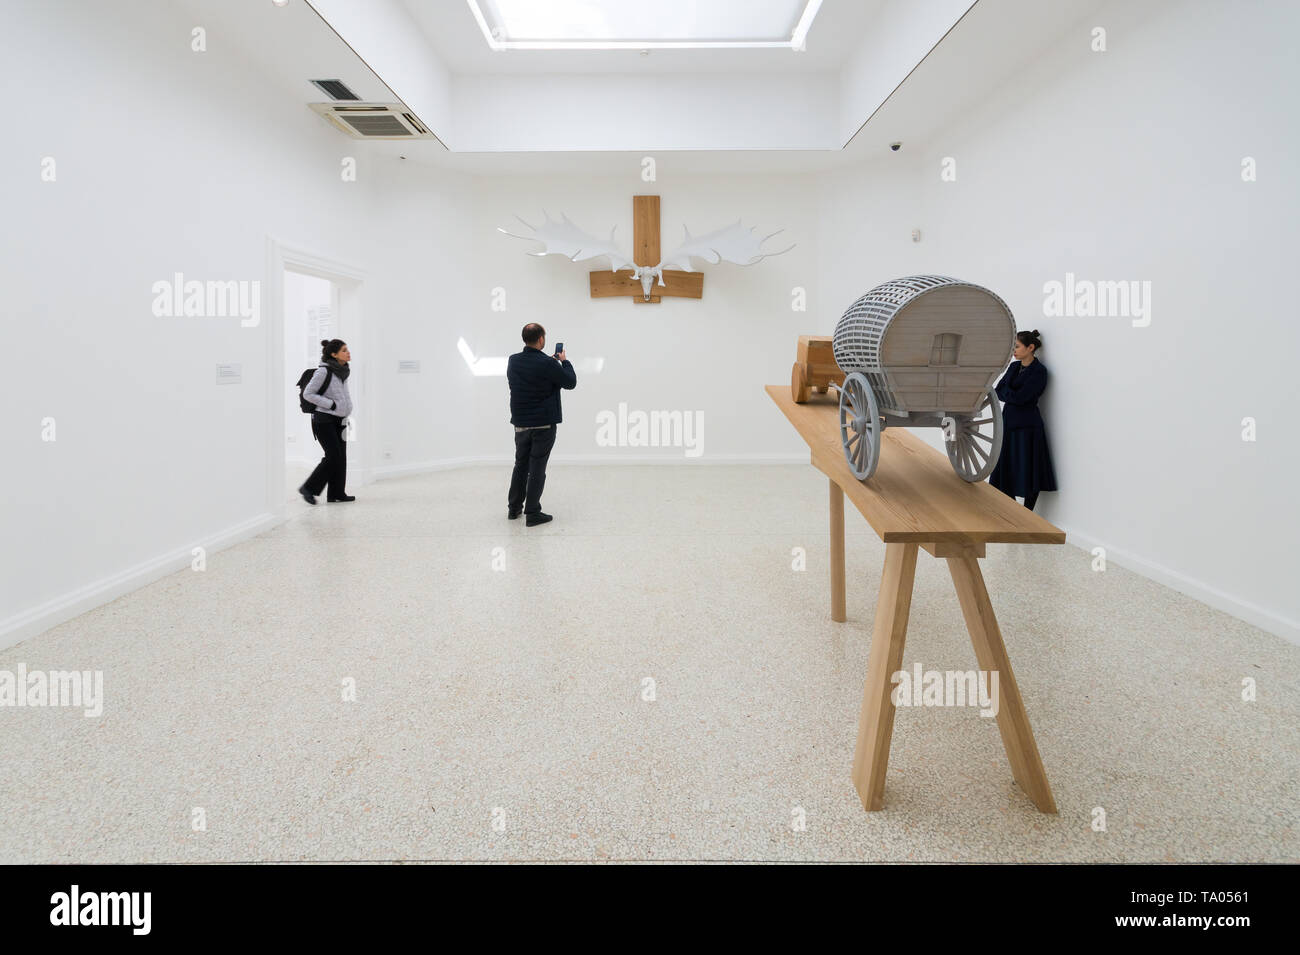 Martin Puryear, Liberty / Libertà exhibition, installation view with New Voortrekker (foreground) and Hibernian Testosterone, Venice Art Biennale 2019 - Stock Image